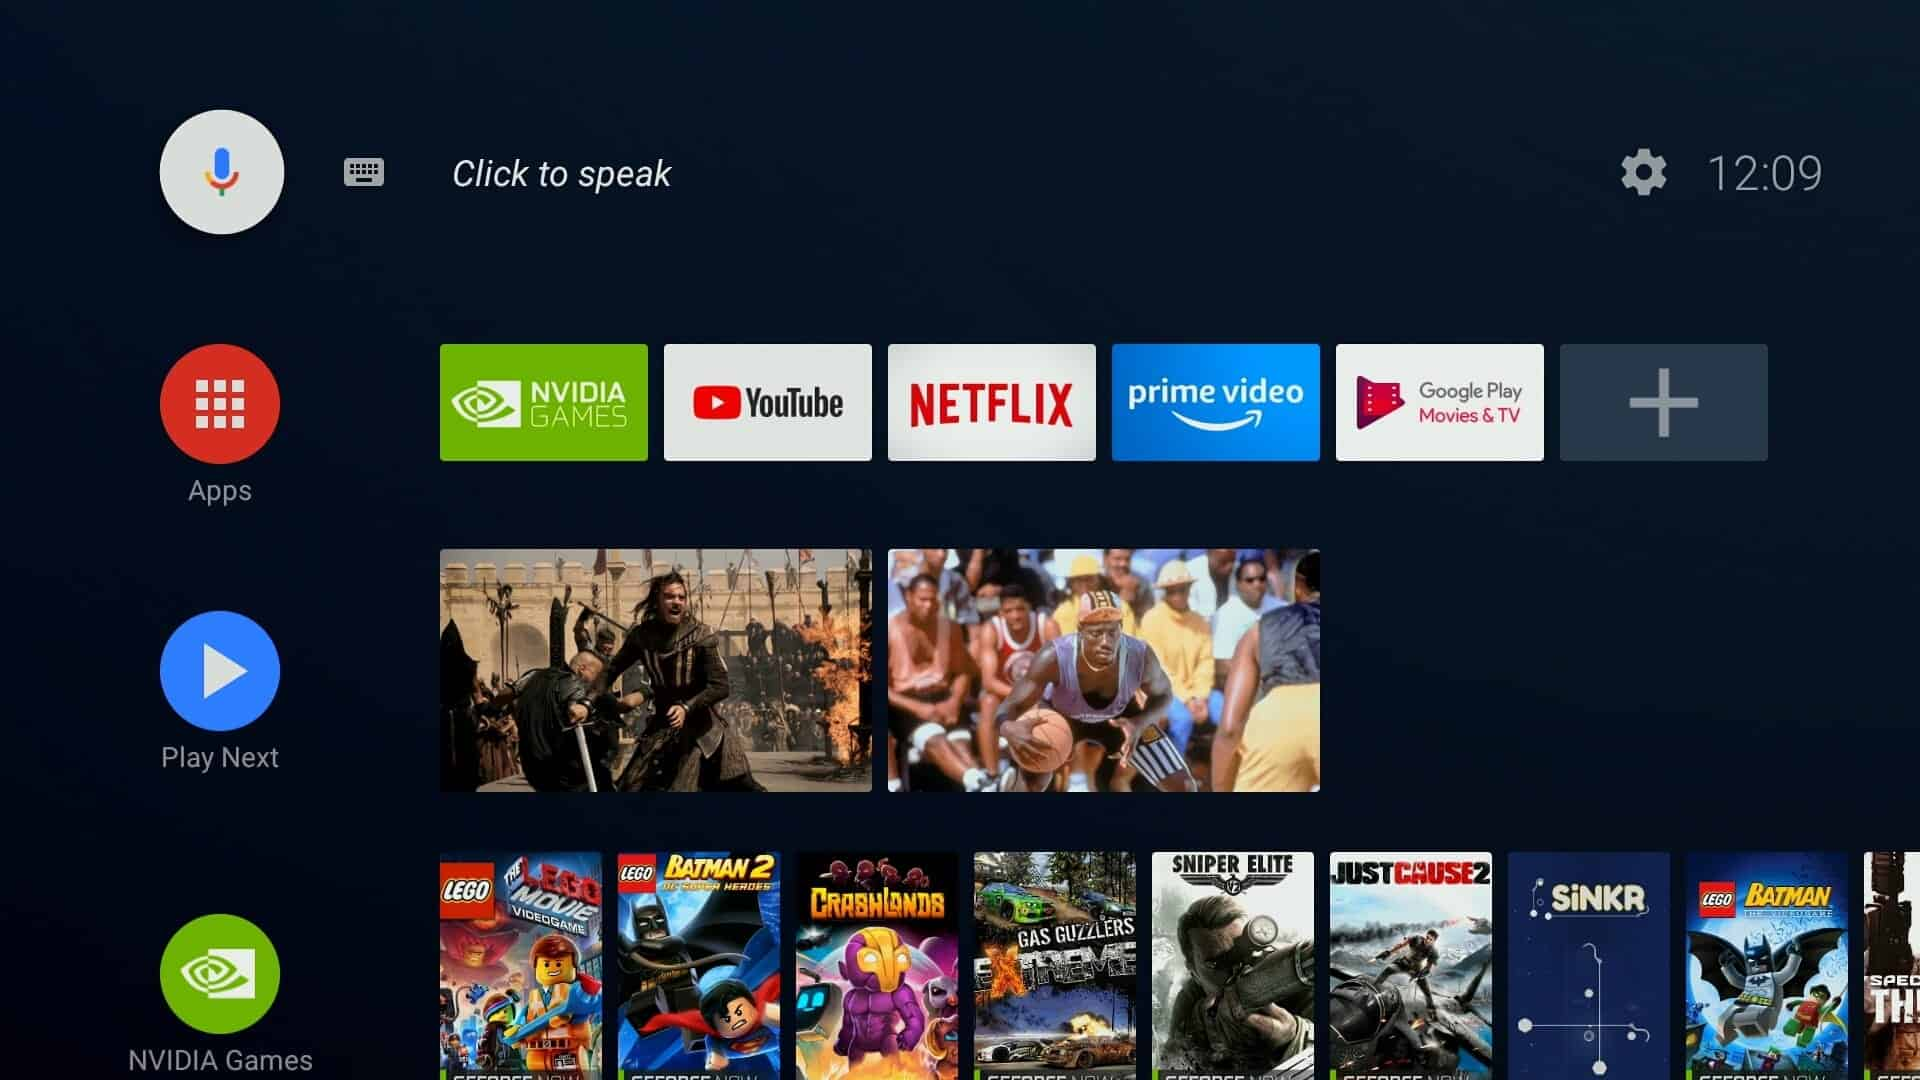 SHIELD TV's 20th Software Upgrade Adds New App, Brings Back NVIDIA Share